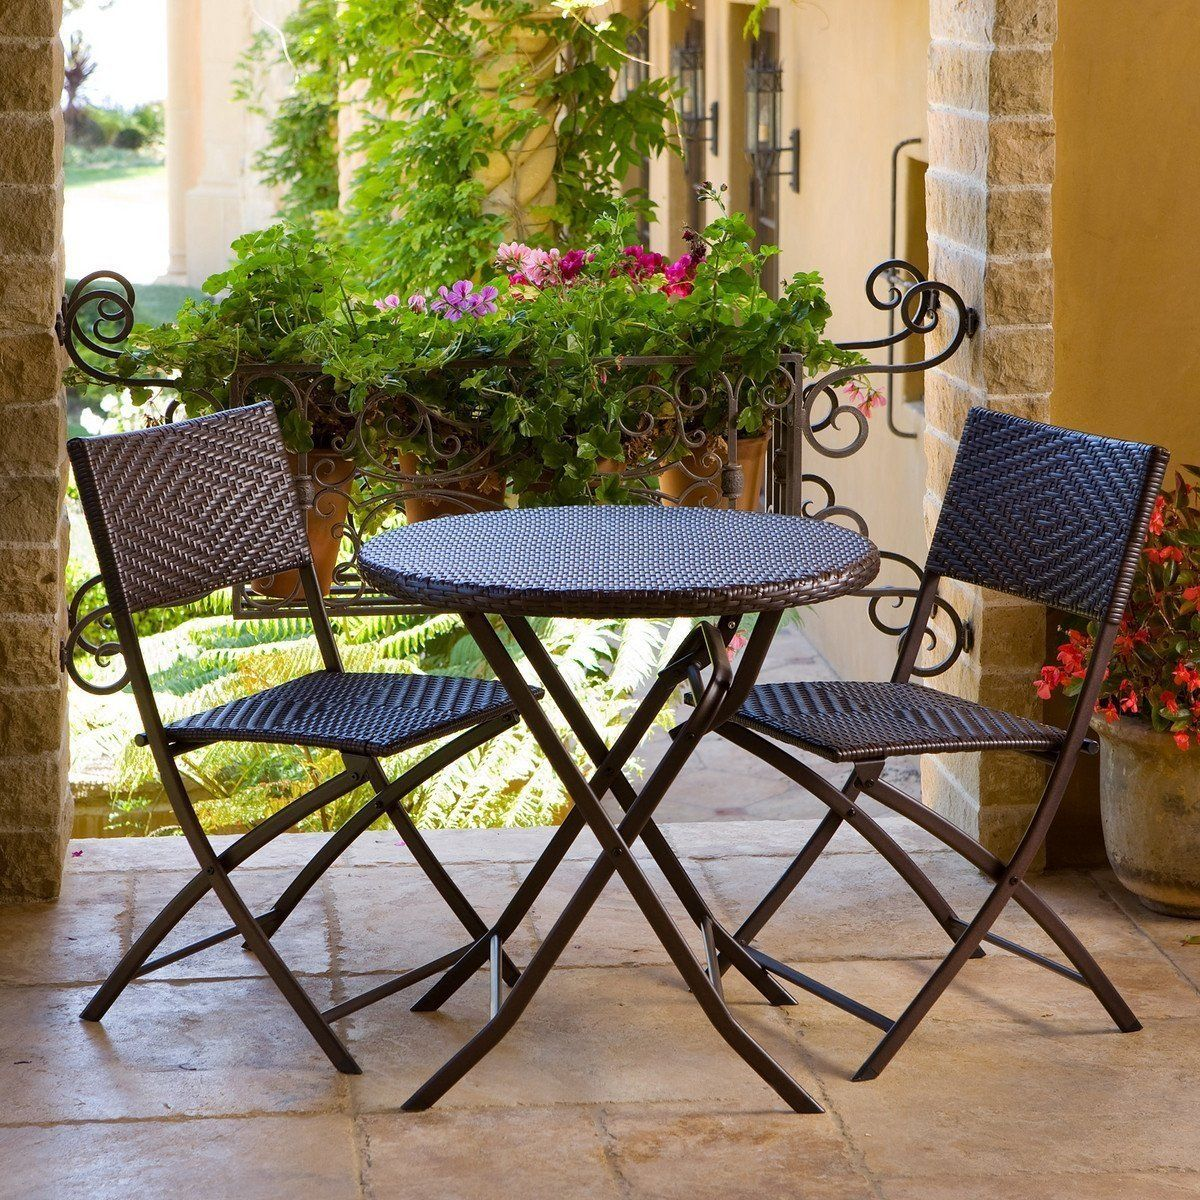 3 Piece Outdoor Bistro Patio Furniture Set In Espresso Bistro